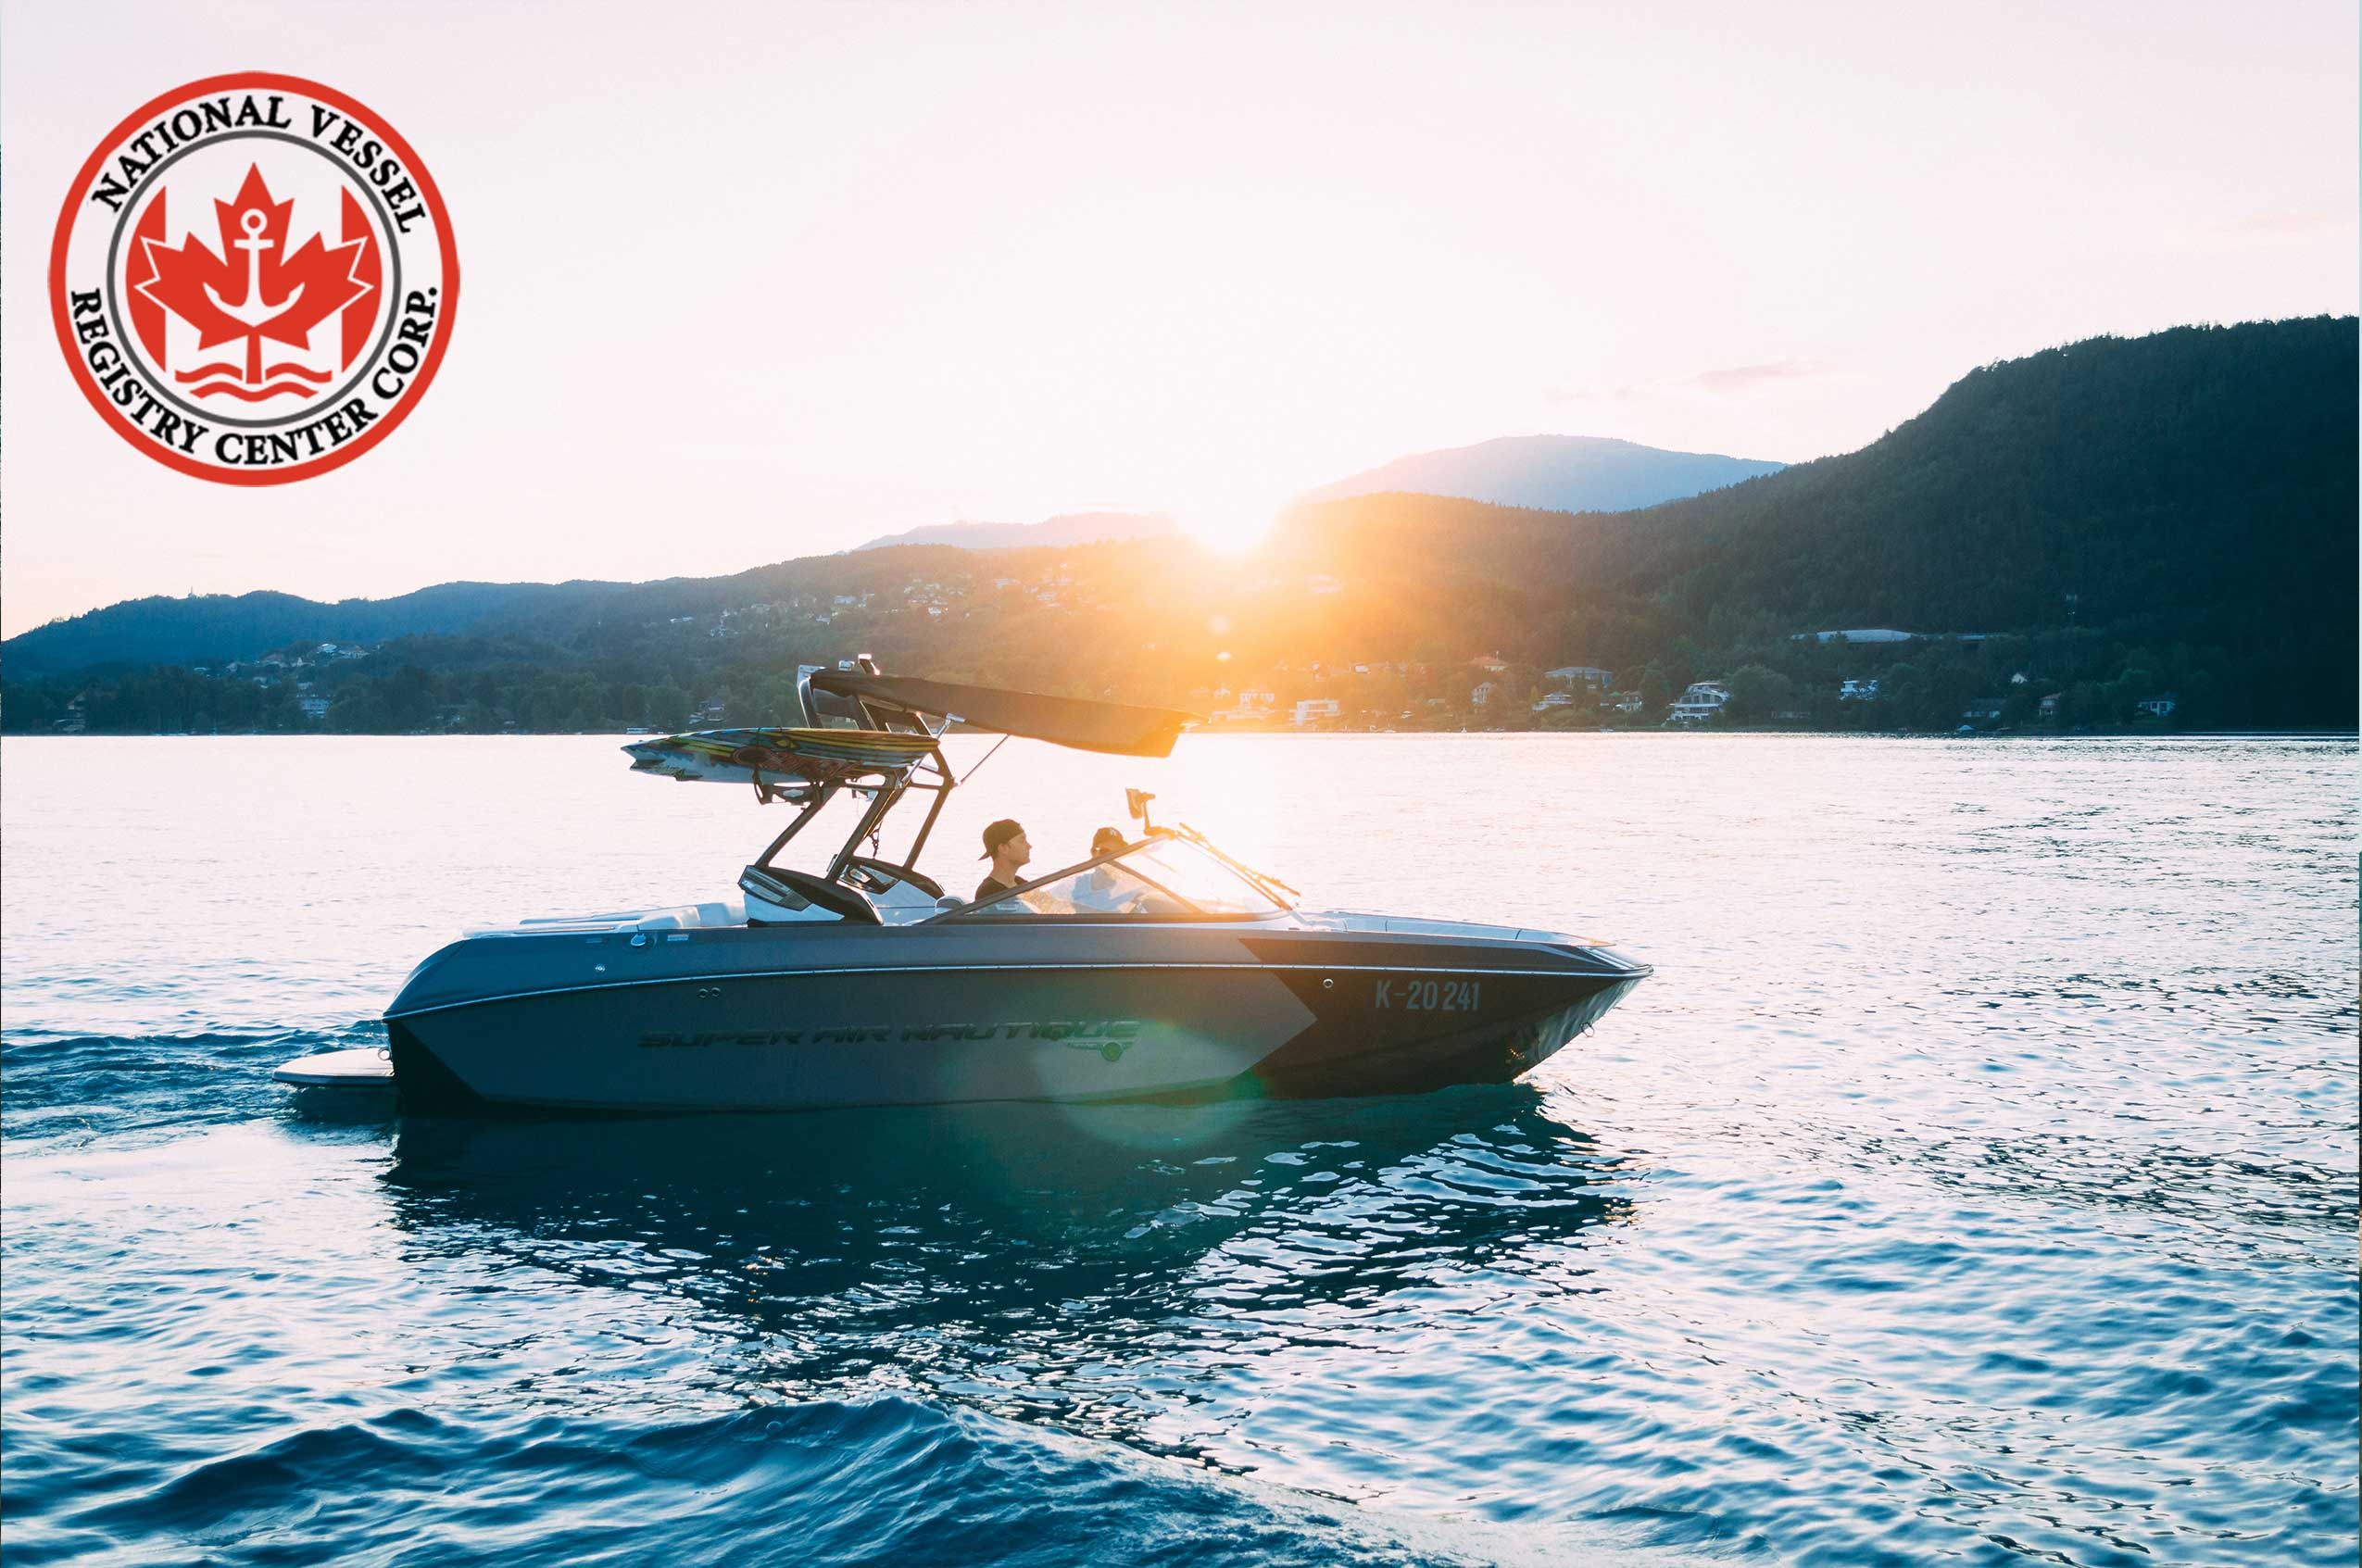 Getting a Pleasure Craft License: The Pleasure of Peace of Mind